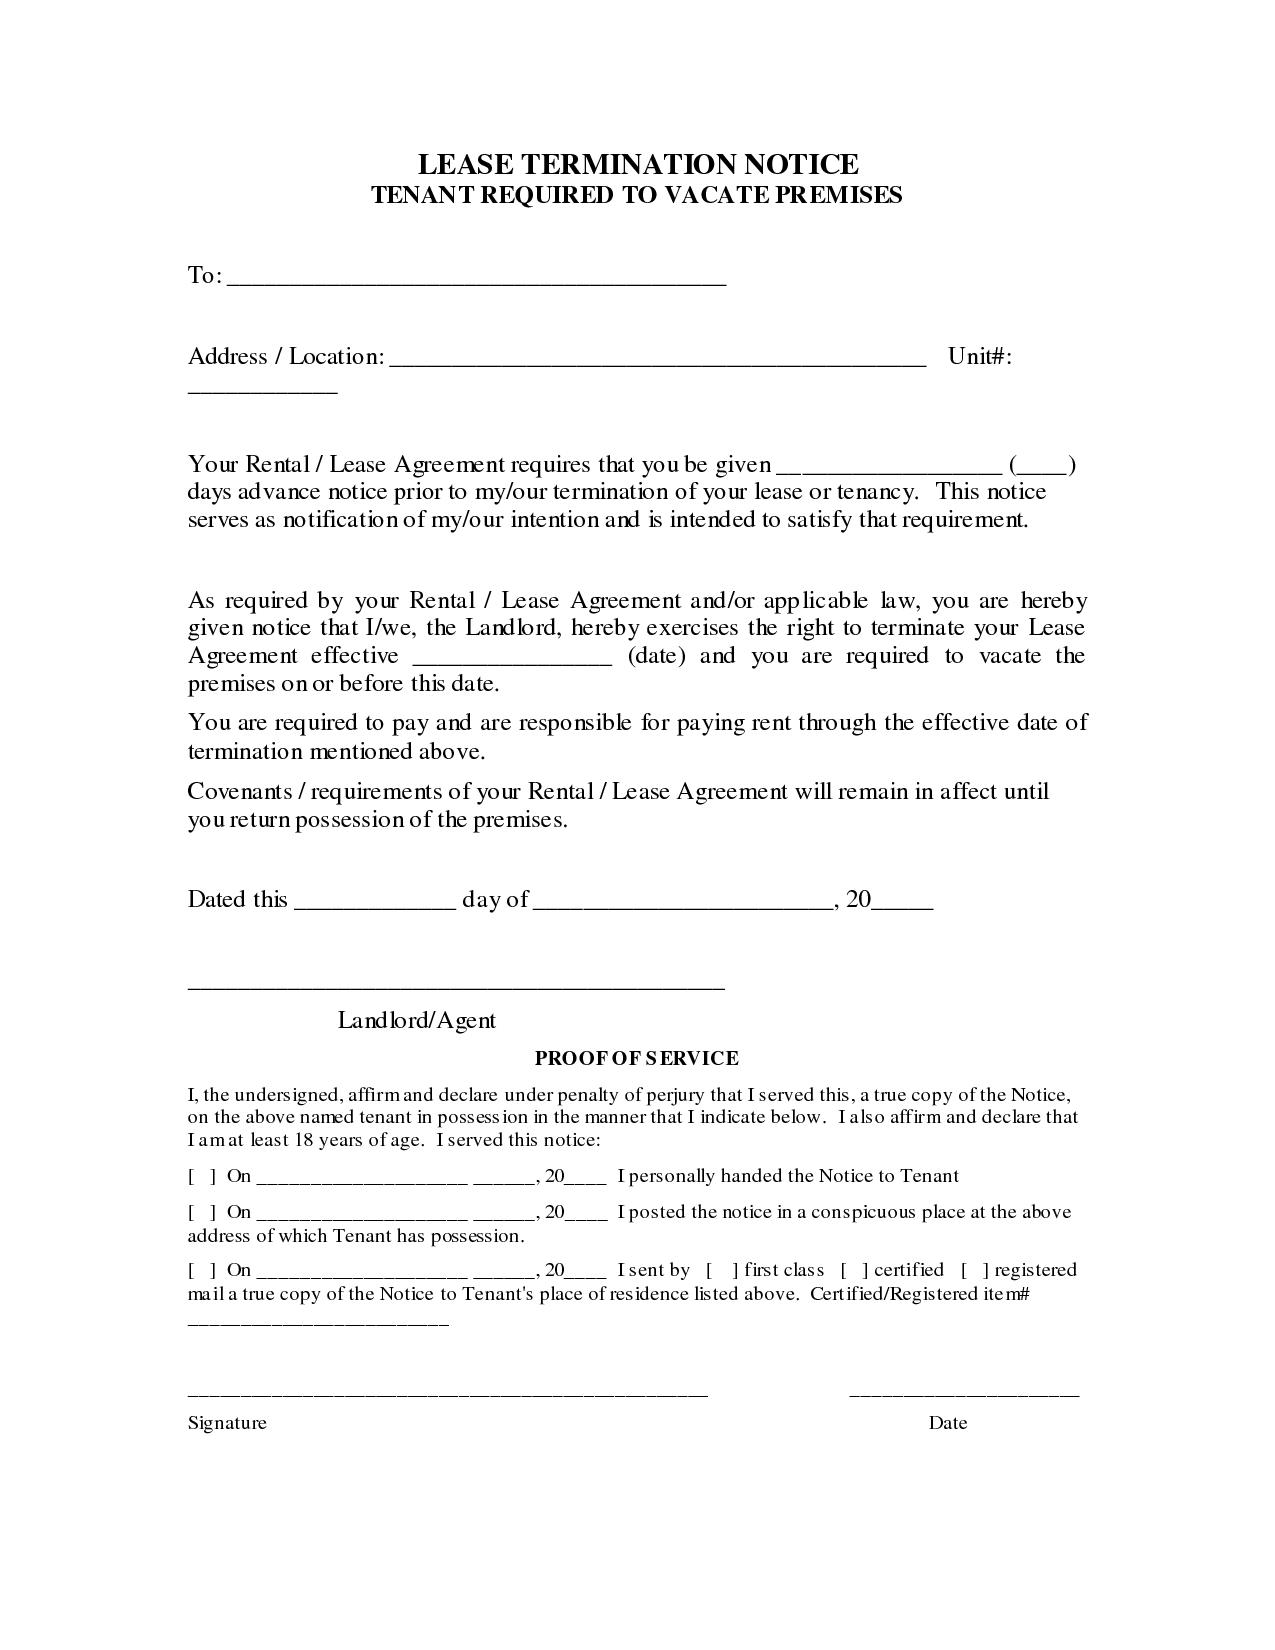 Rental Agreement Termination Letter Sample Lease From Landlord